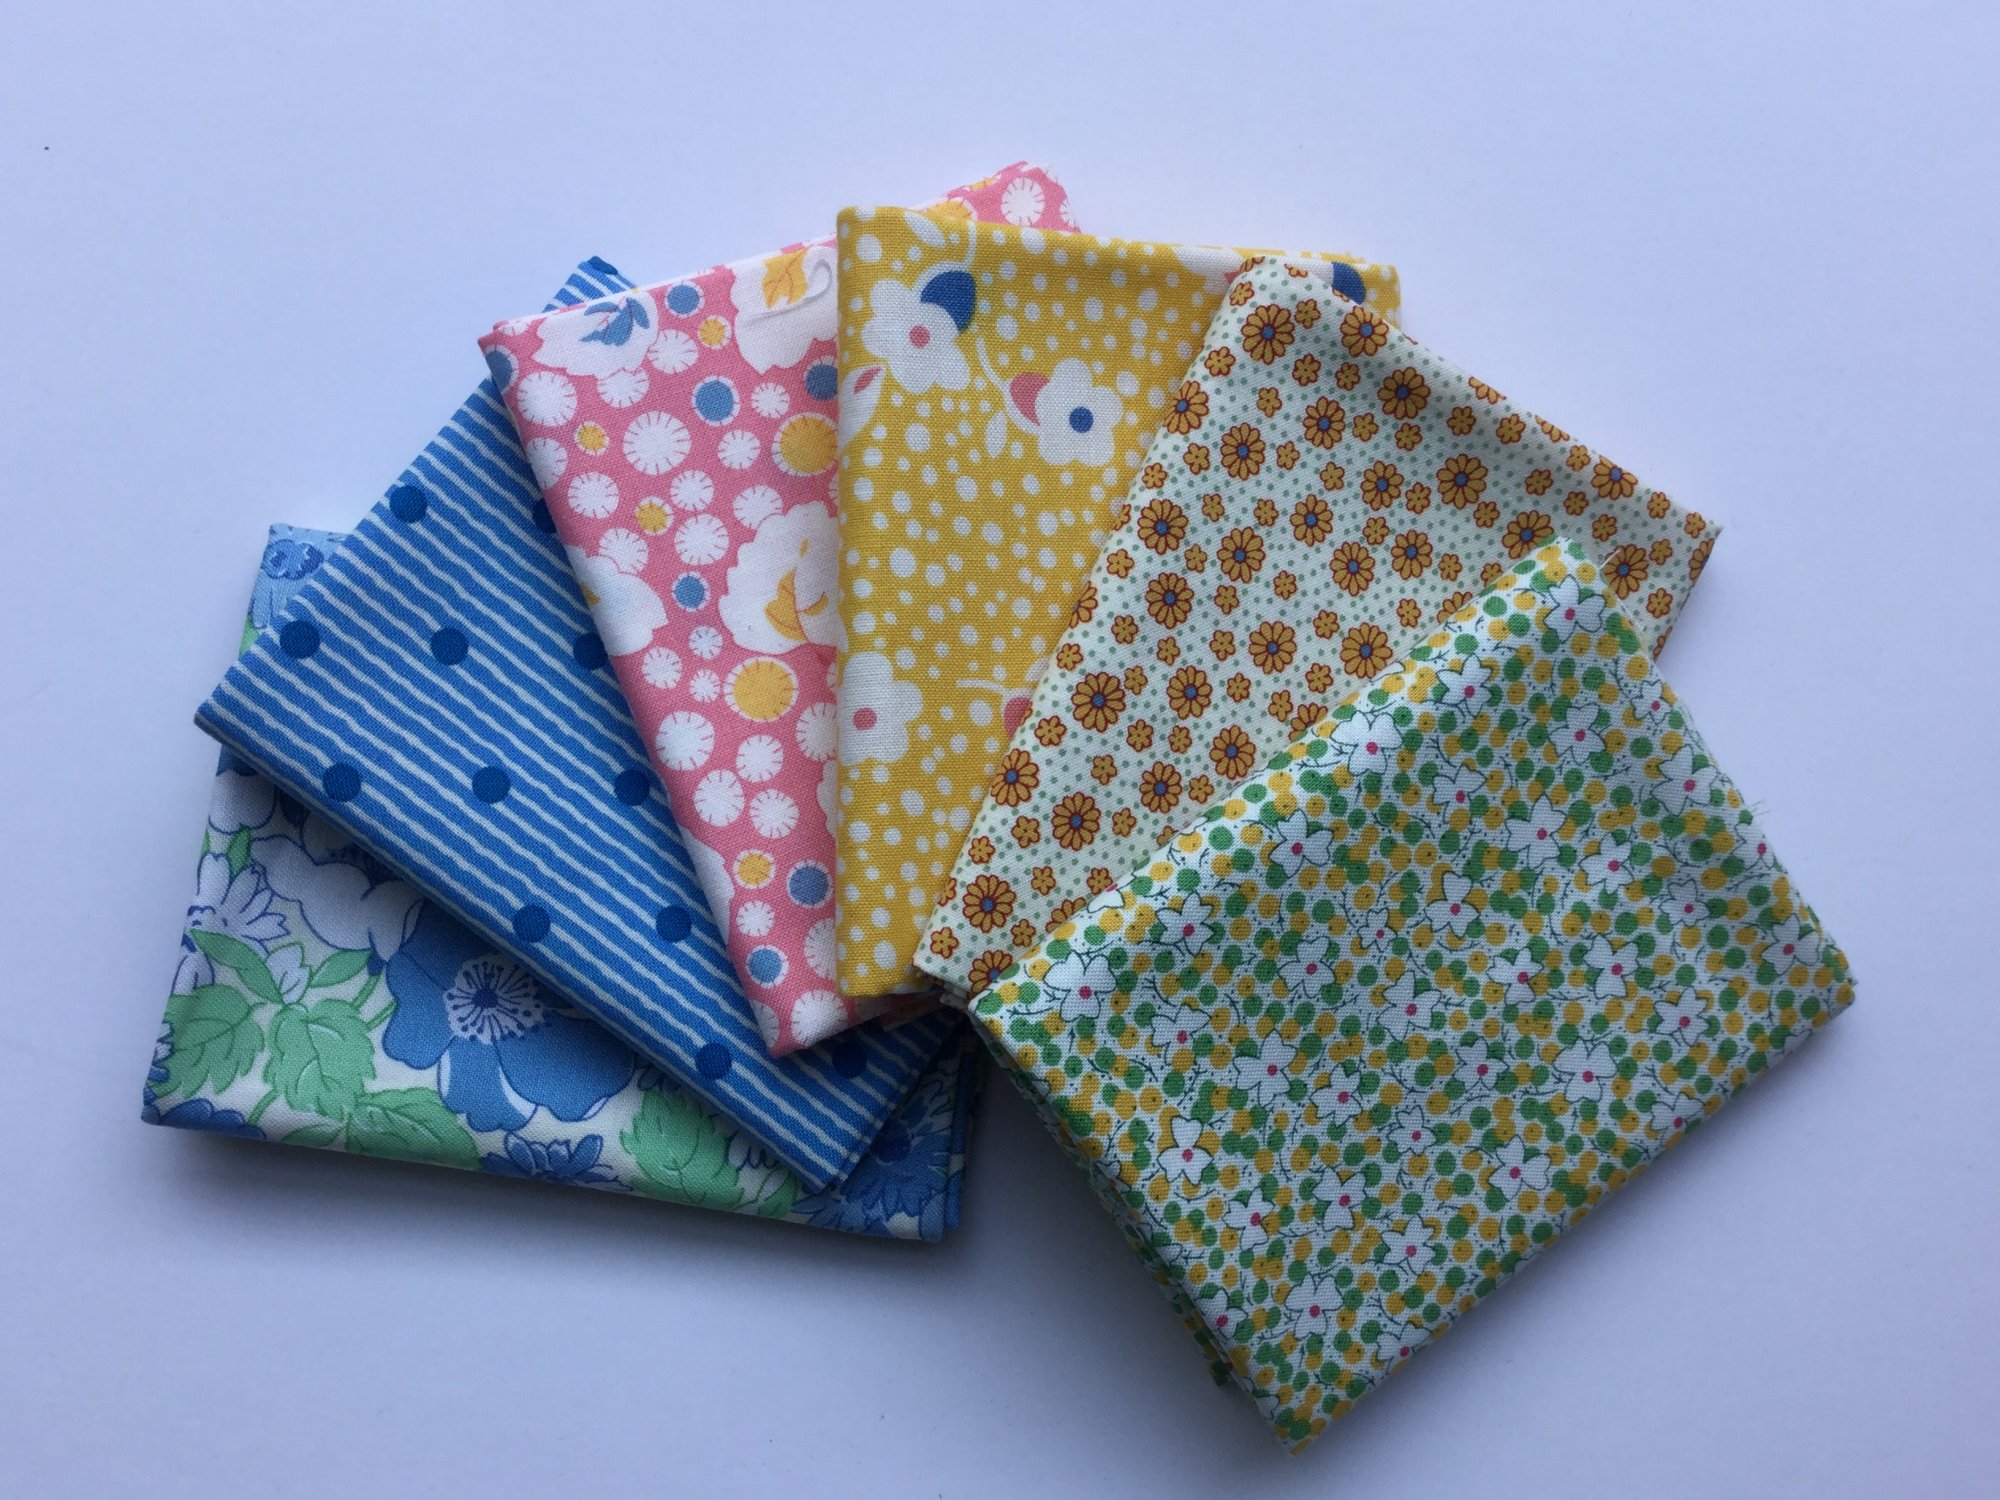 Fat Quarter Bundle - 30's fabrics  - Large Mixed Bundle of 10